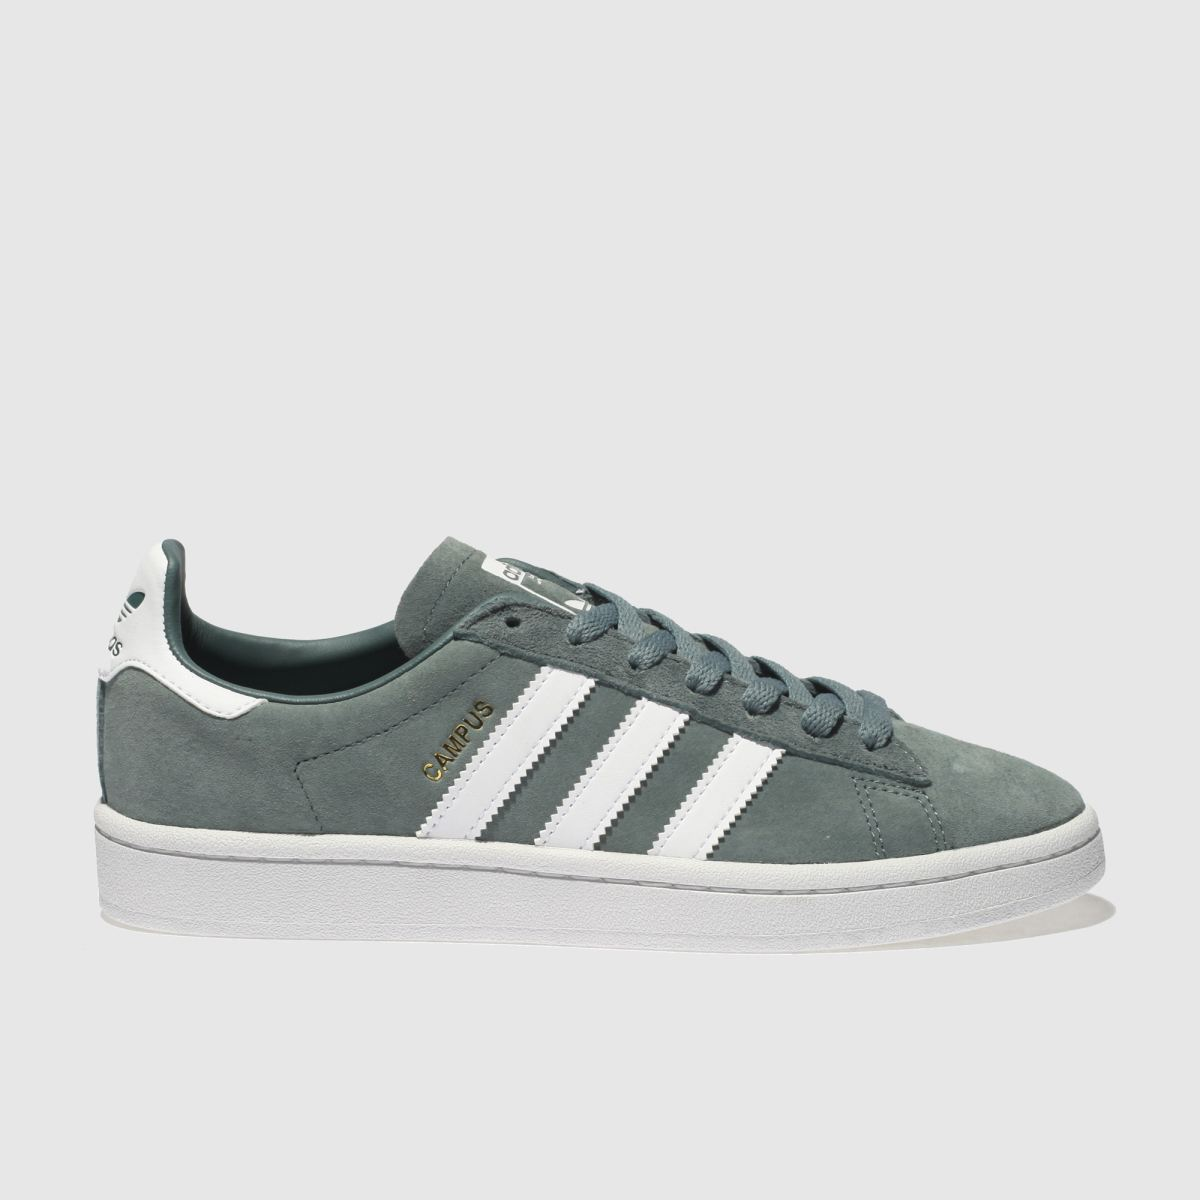 Adidas Green Campus Suede Trainers